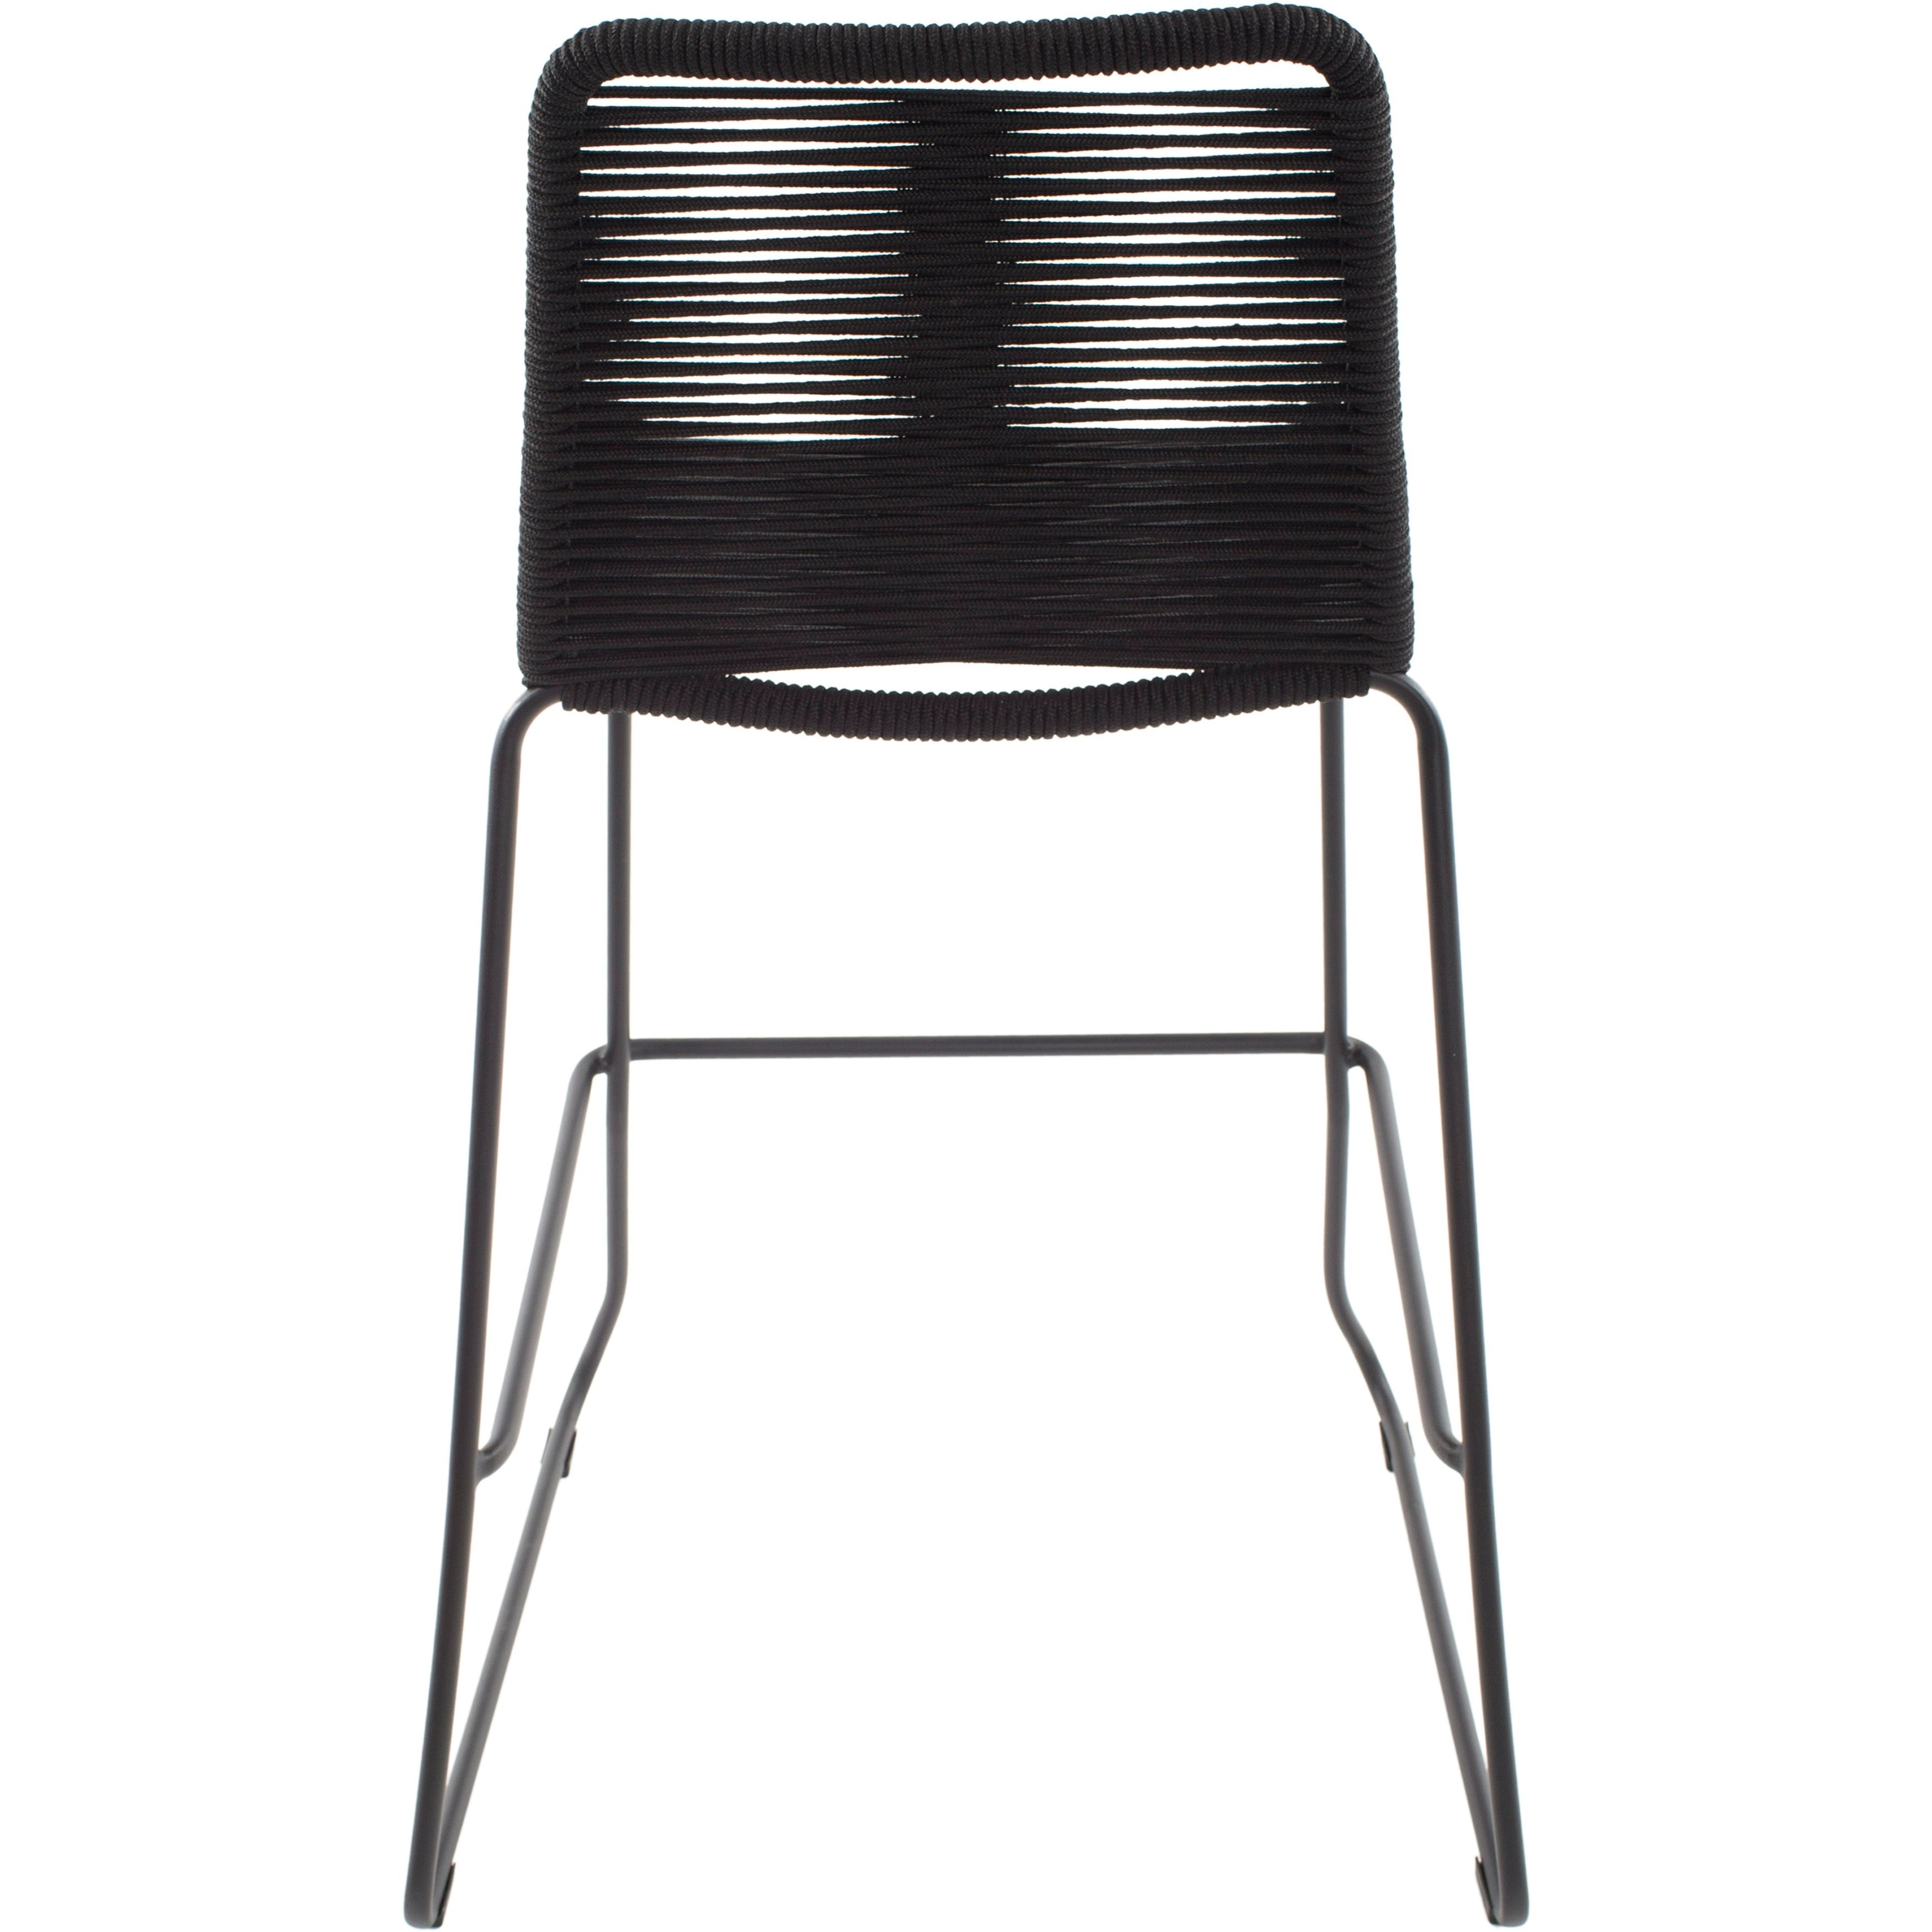 InsideOut By MIX 42 Inch Height Mia Industrial Chic Indoor/ Outdoor Pub  Table And Bar Stools 3 Piece Set   Free Shipping Today   Overstock.com    18036343